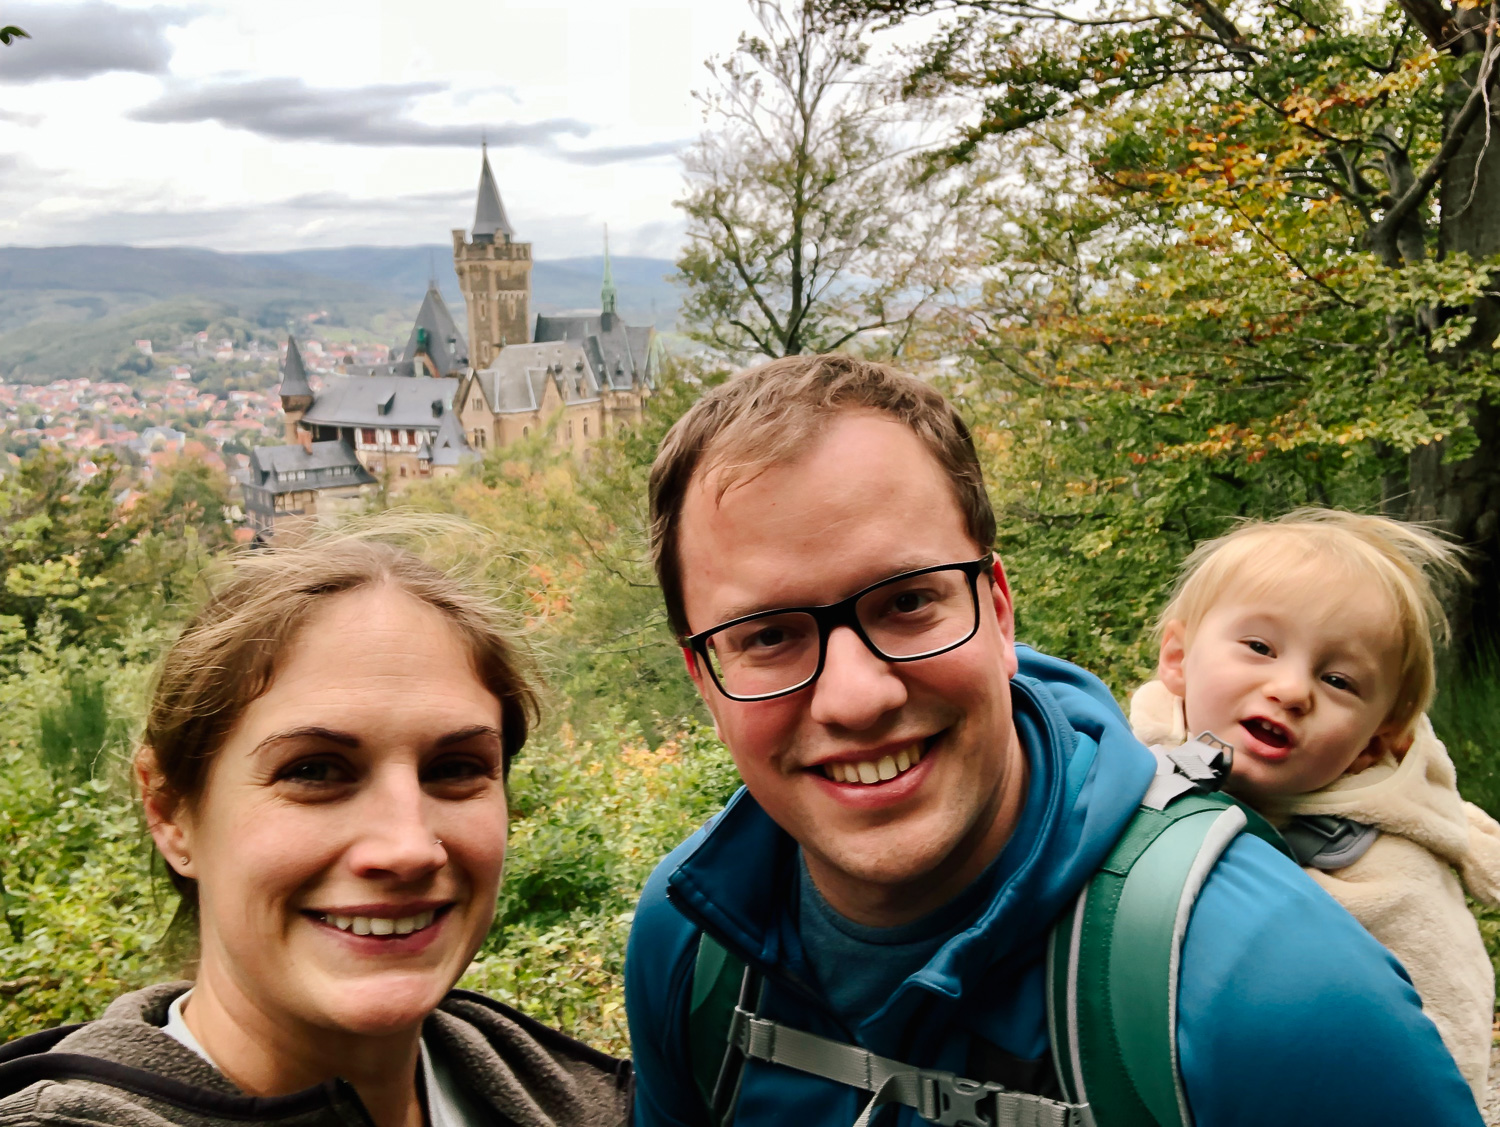 An American expat tells us what life is like in Braunschweig, Germany